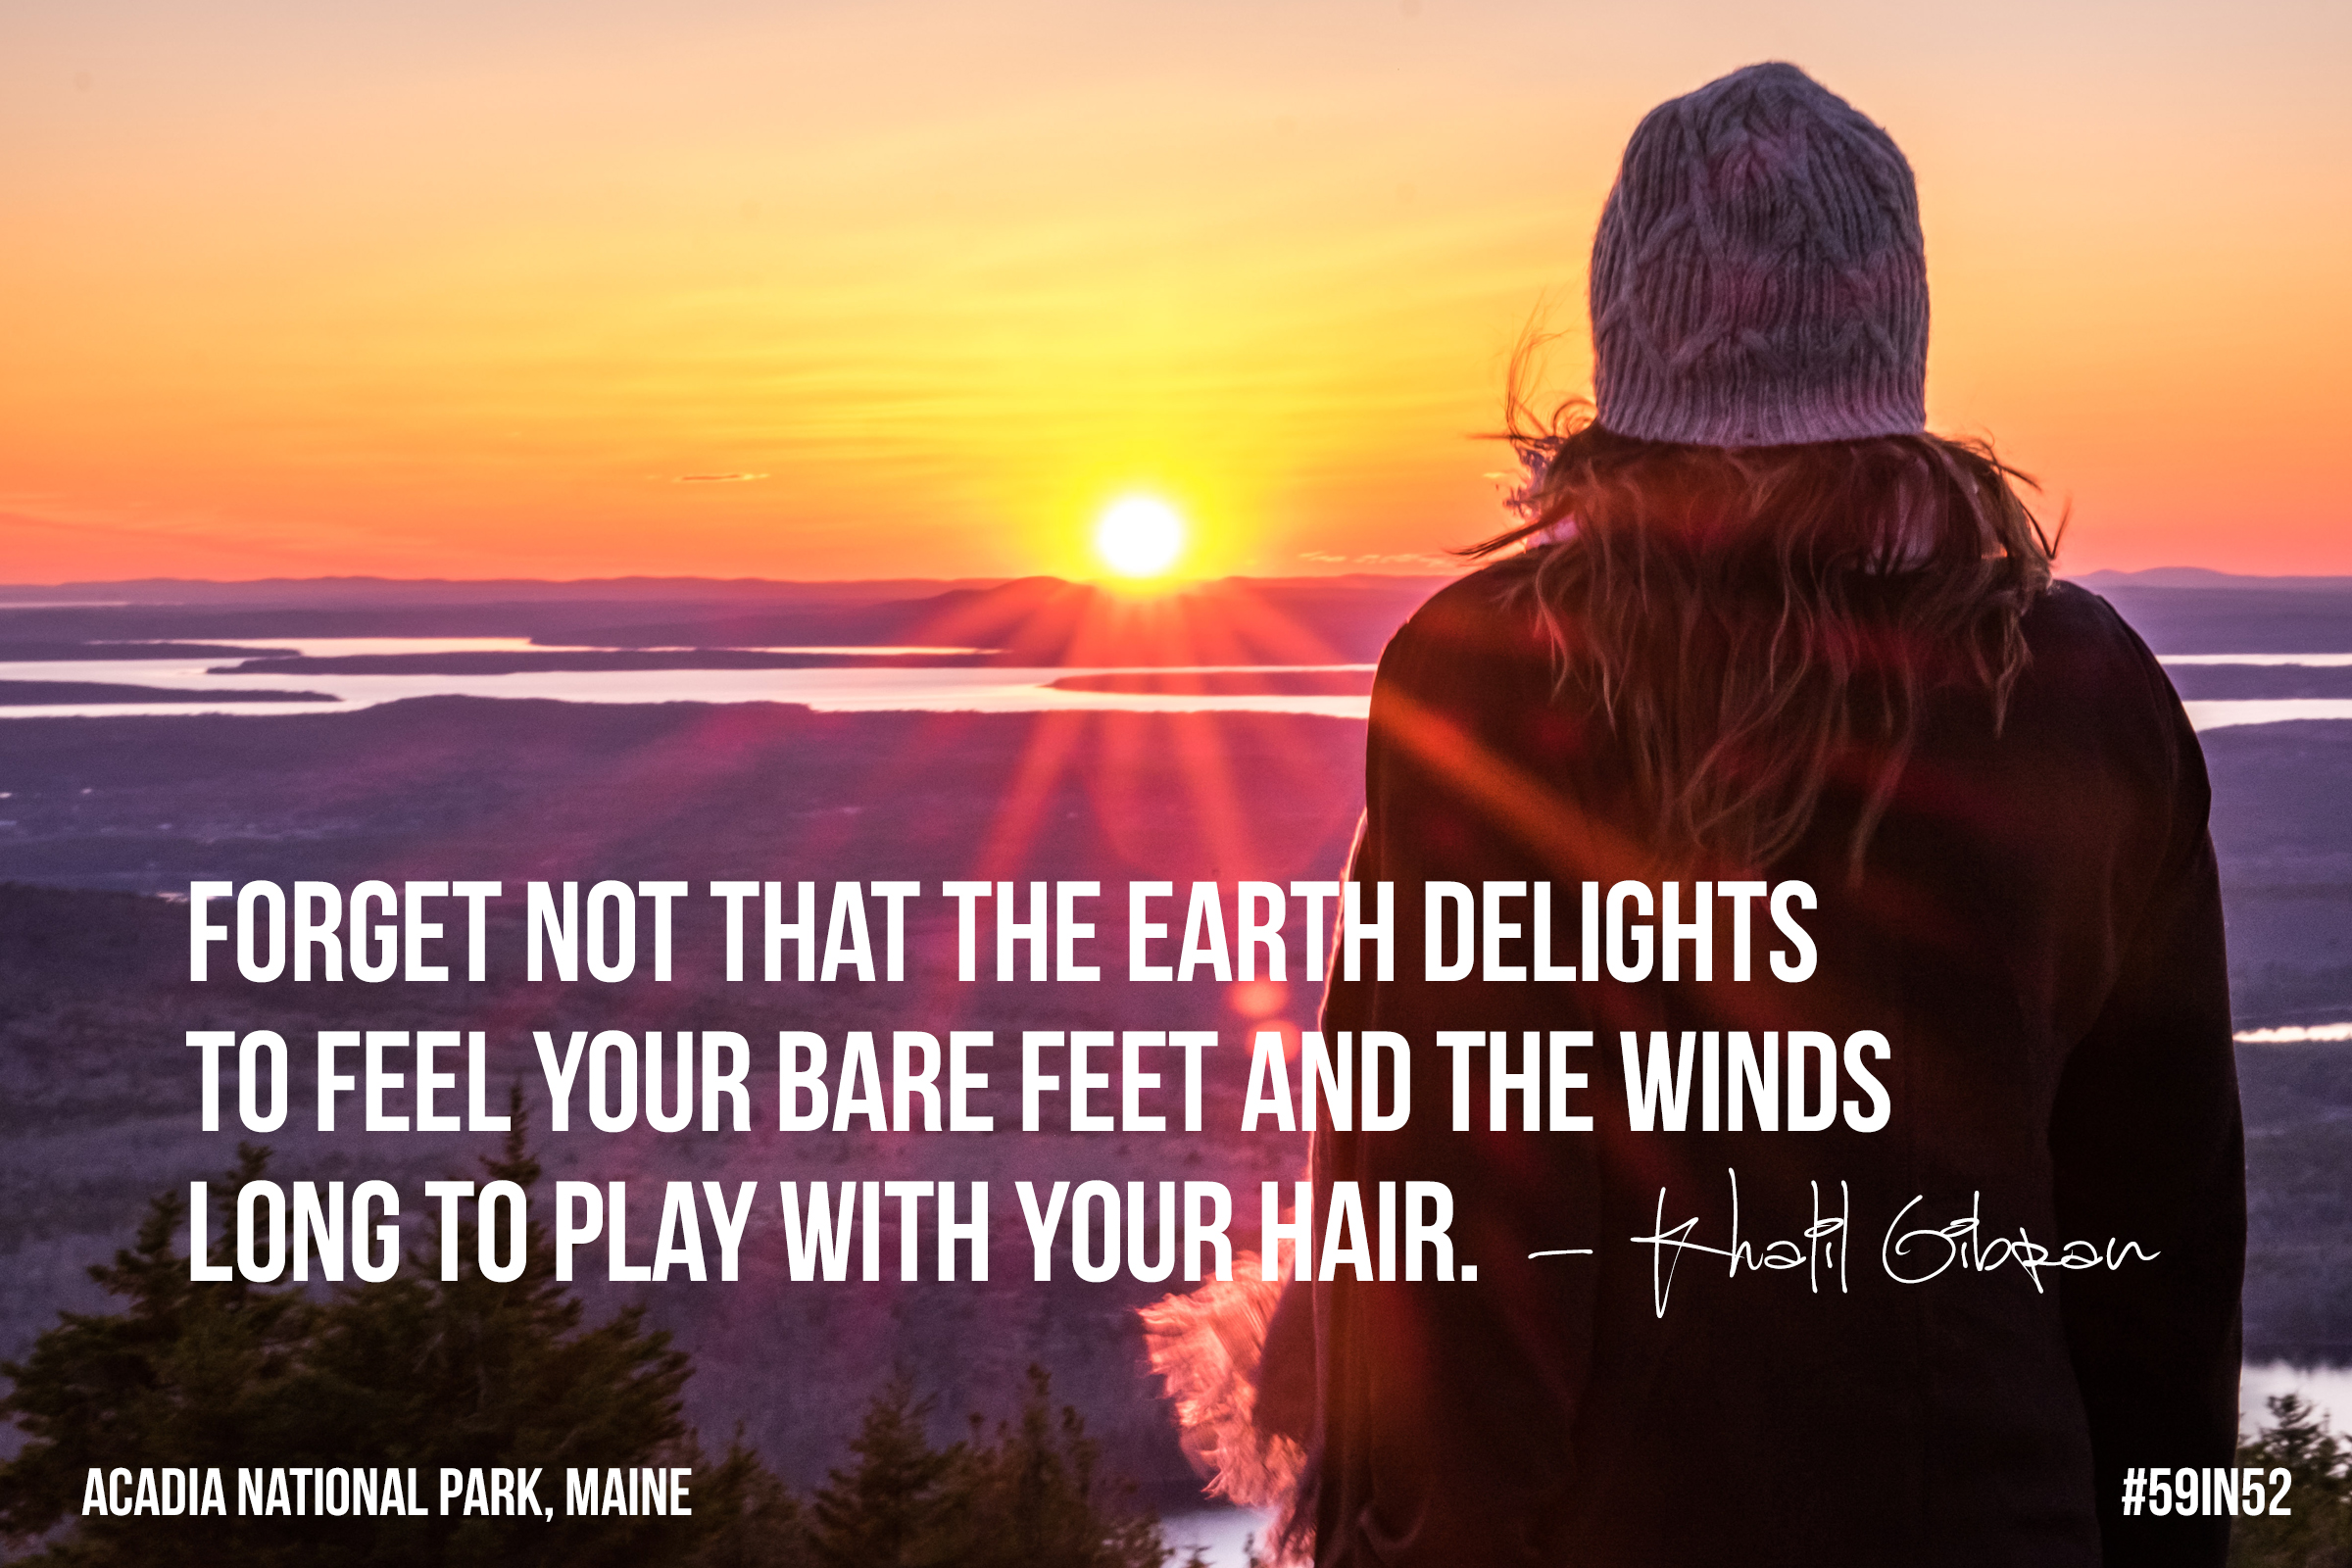 'Forget not that the Earth delights to feel your bare feet and the winds long to play with your hair.' - Khalil Gibran